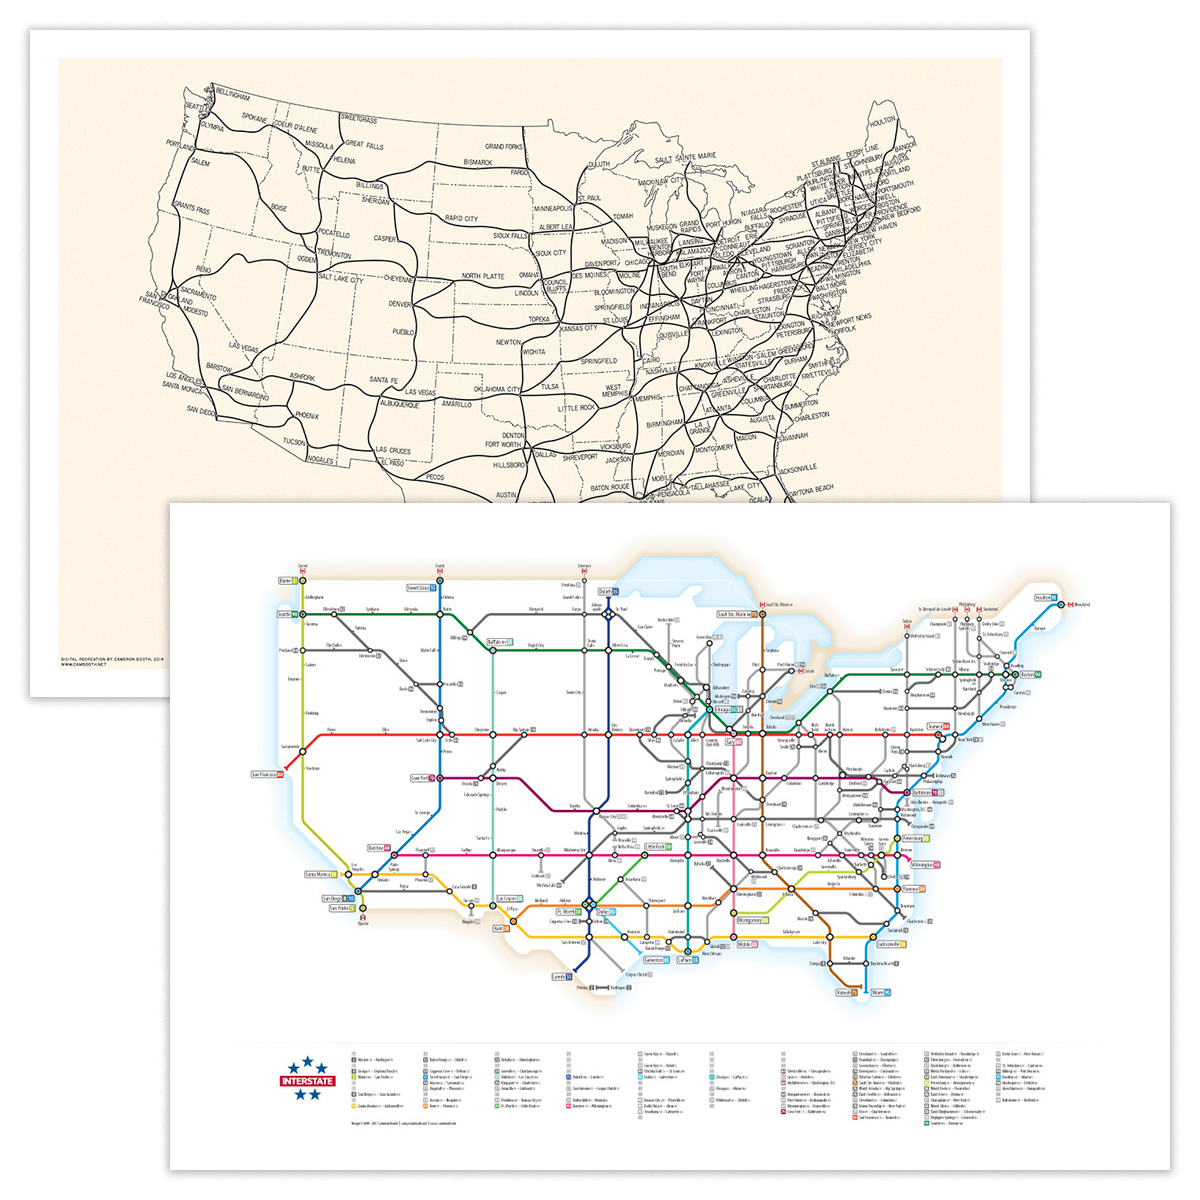 As A Subway Map.1947 Interstates Map Interstates As A Subway Map Combo Pack